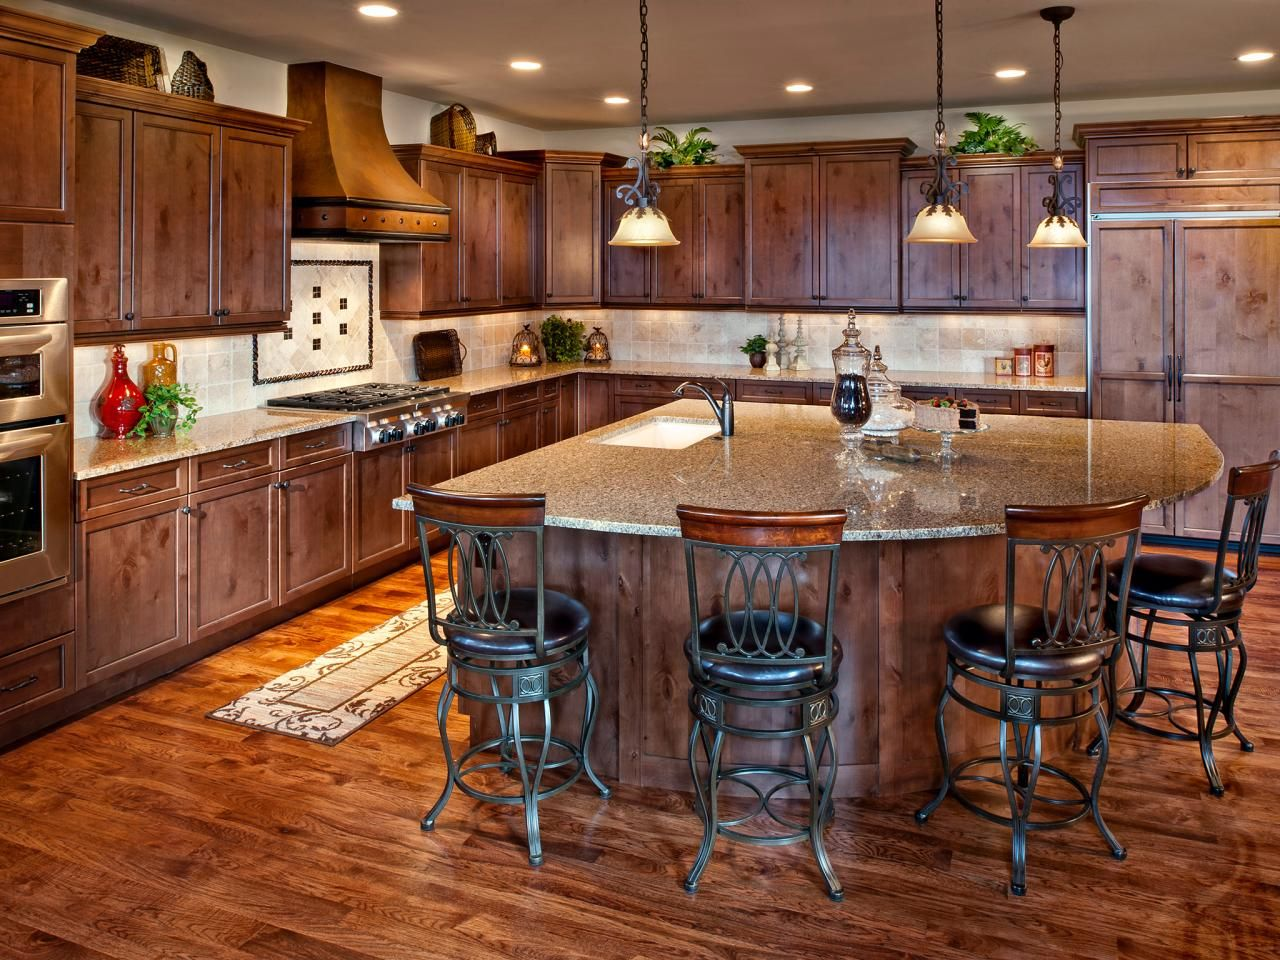 Best 25+ Pictures Of Kitchens Ideas On Pinterest